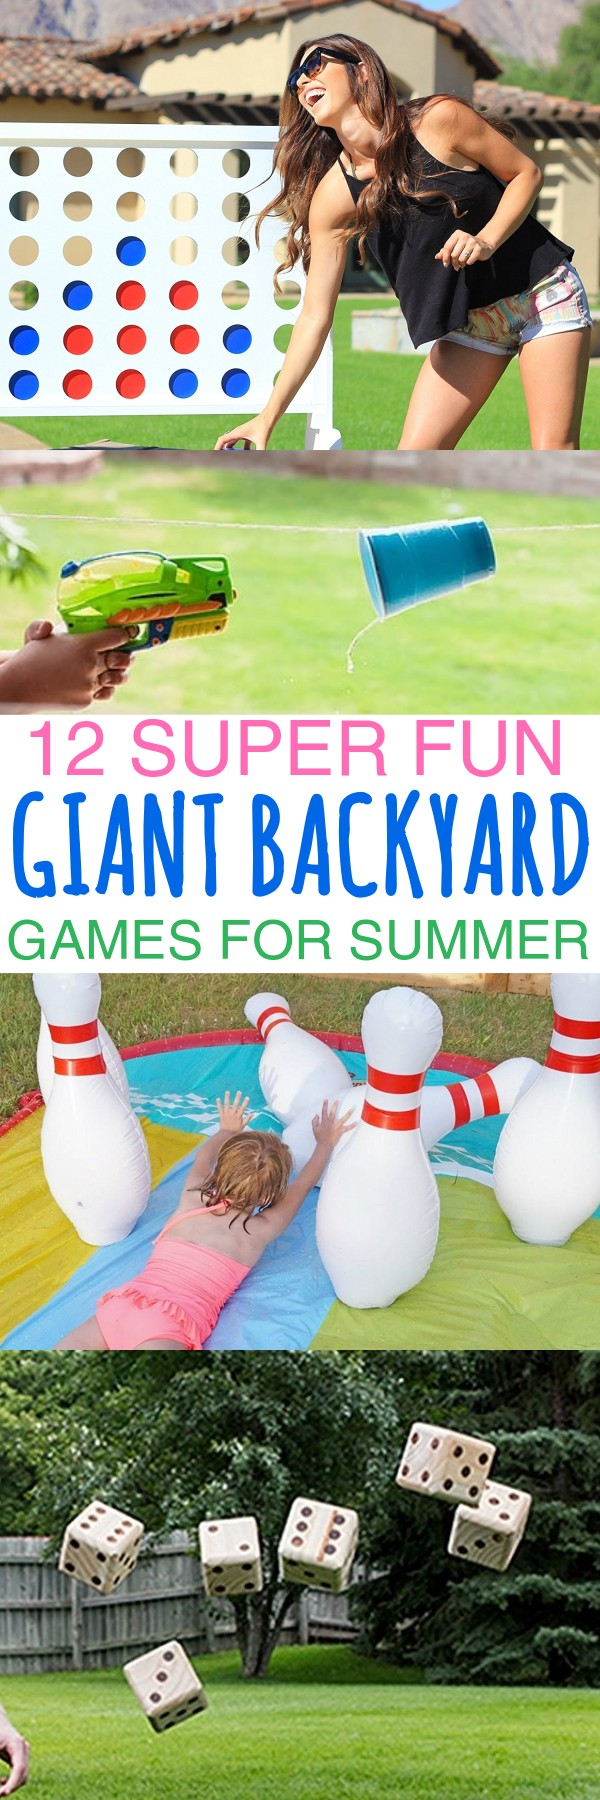 12 Summer Giant Backyard Games To Play and Outdoor Game Ideas For The Whole Family - list of outdoor games | fun easy outdoor games for kids | giant games | jumbo yard games | top 10 outdoor games list | DIY outdoor games | Remove term: fun outdoor games for large groups fun outdoor games for large groups | honeyandlime.co